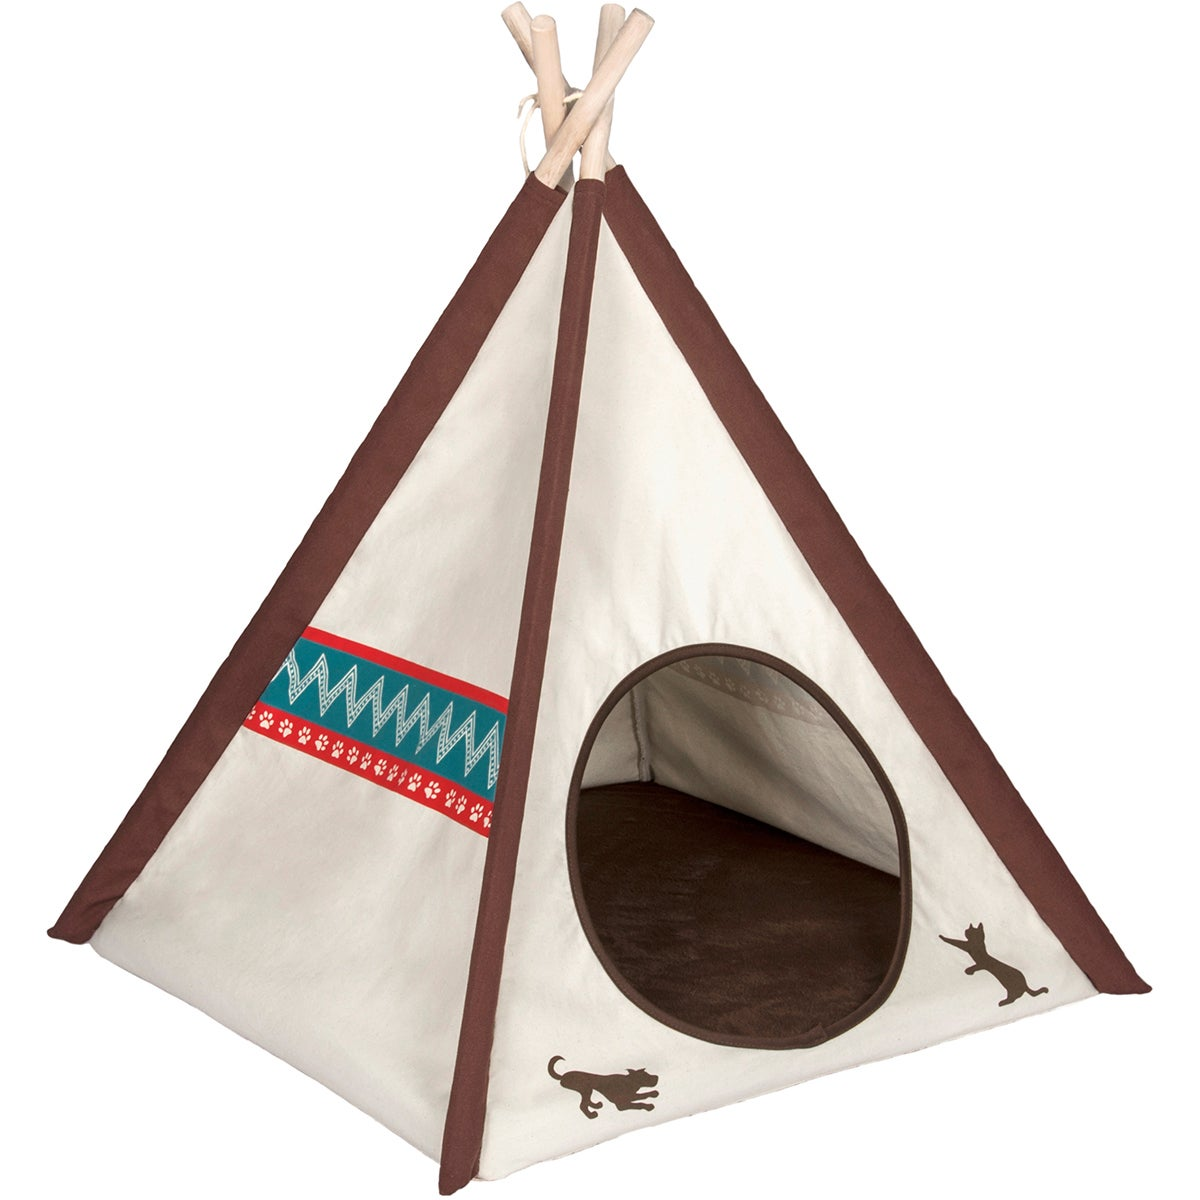 """P.L.A.Y. Teepee Tent (24.8"""" x 24.8"""" x 29.1"""") (Marsala), Red"""